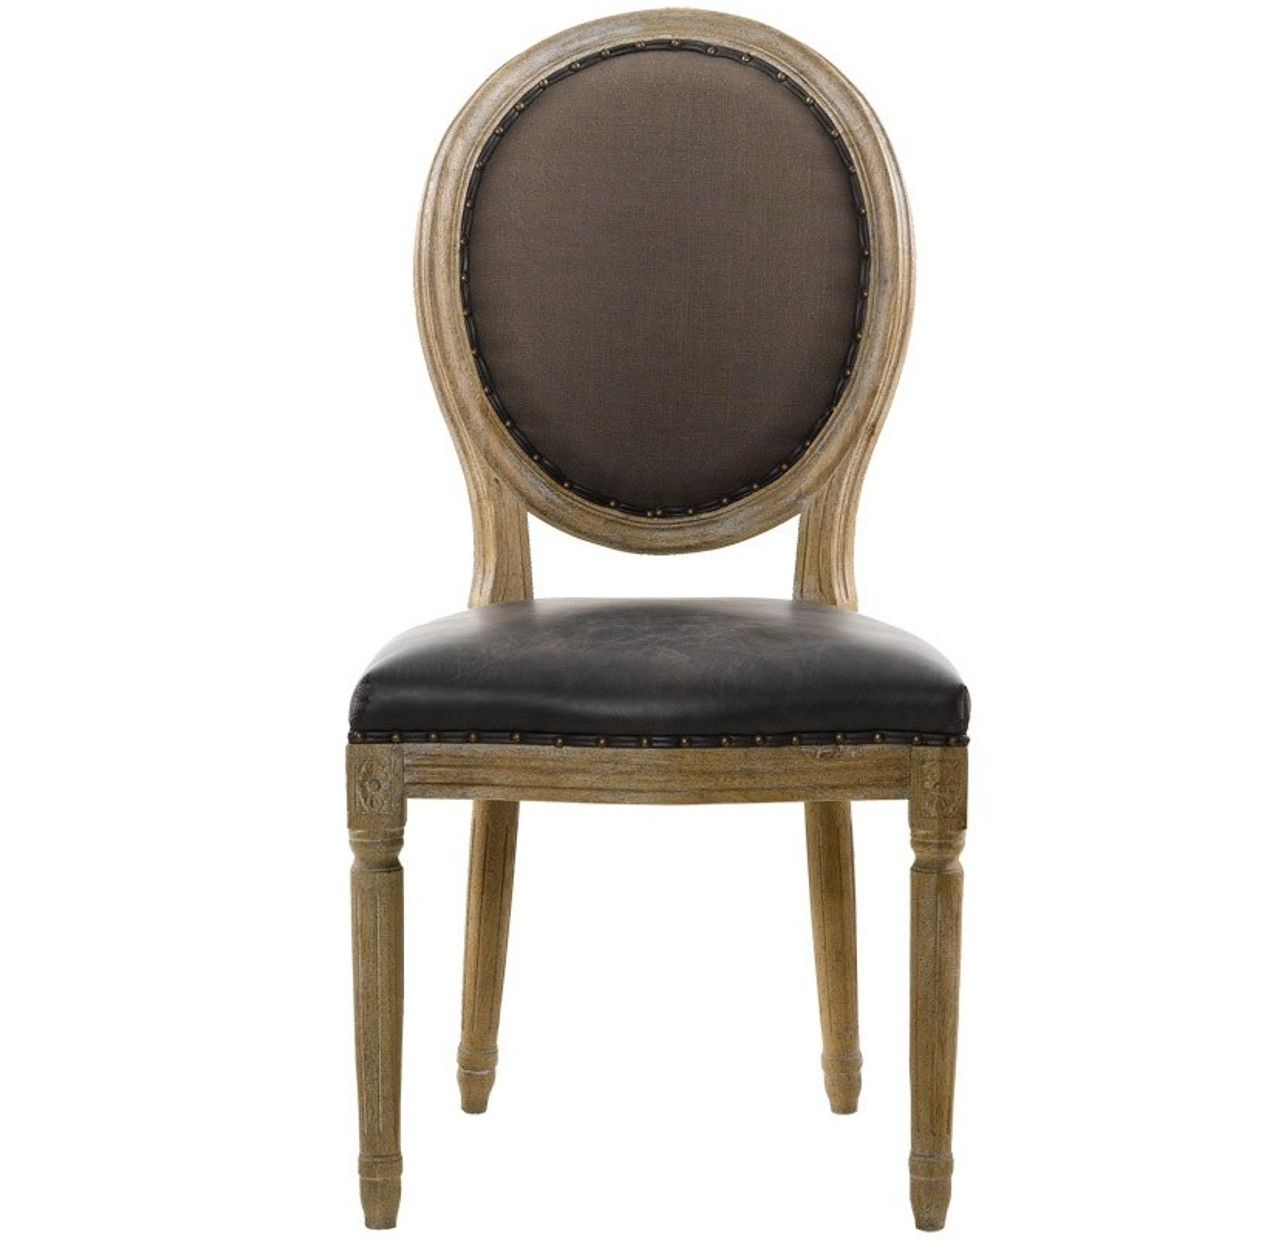 leather side chairs. FRENCH VINTAGE LOUIS GLOVE ROUND SIDE CHAIR Leather Side Chairs C